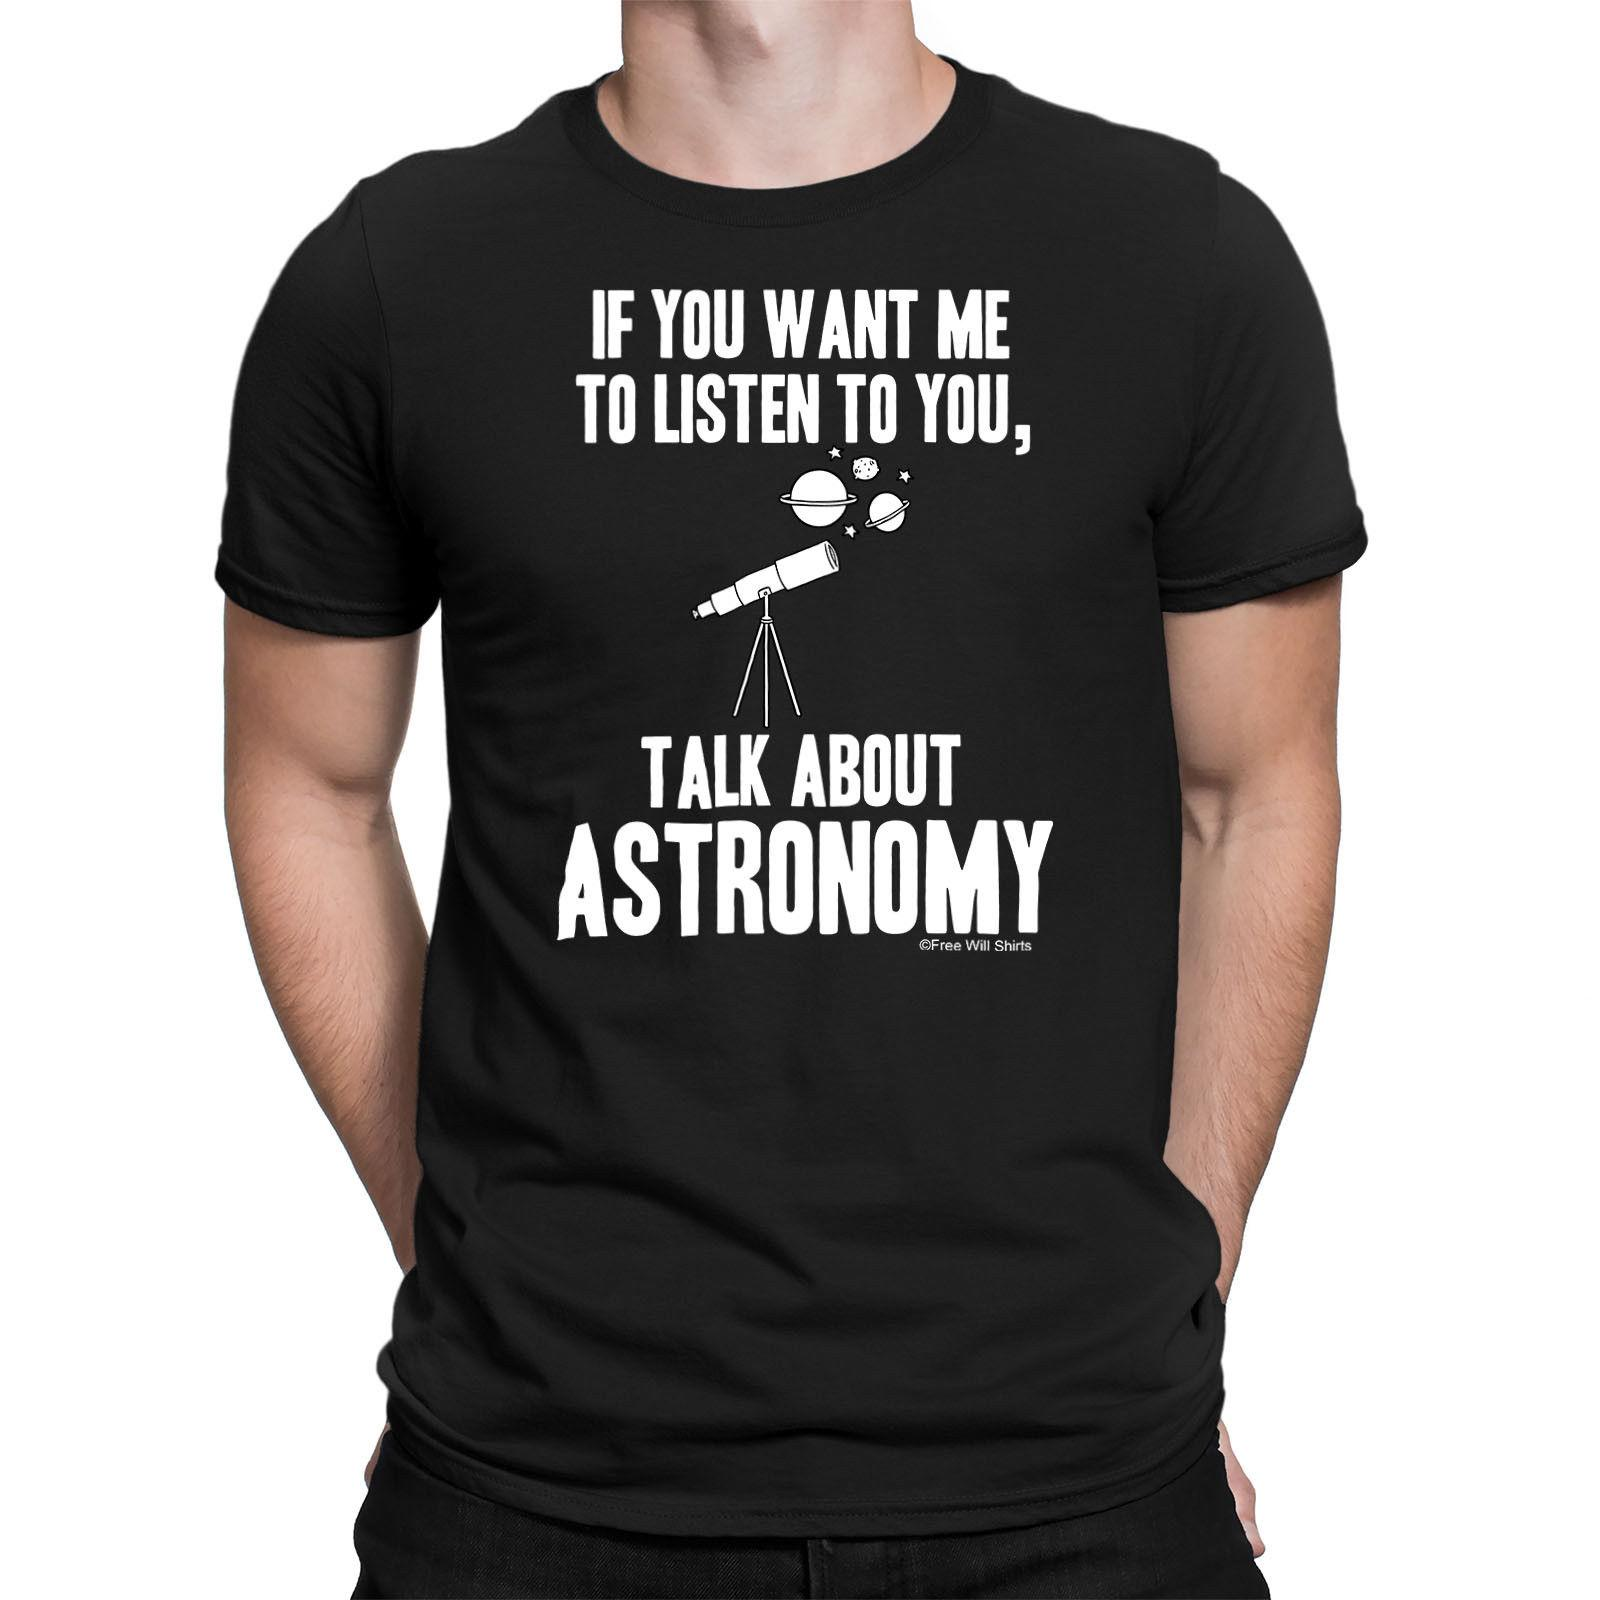 Mens T-Shirt IF YOU WANT ME TO LISTEN TALK ABOUT ASTRONOMY Telescope Planet Top